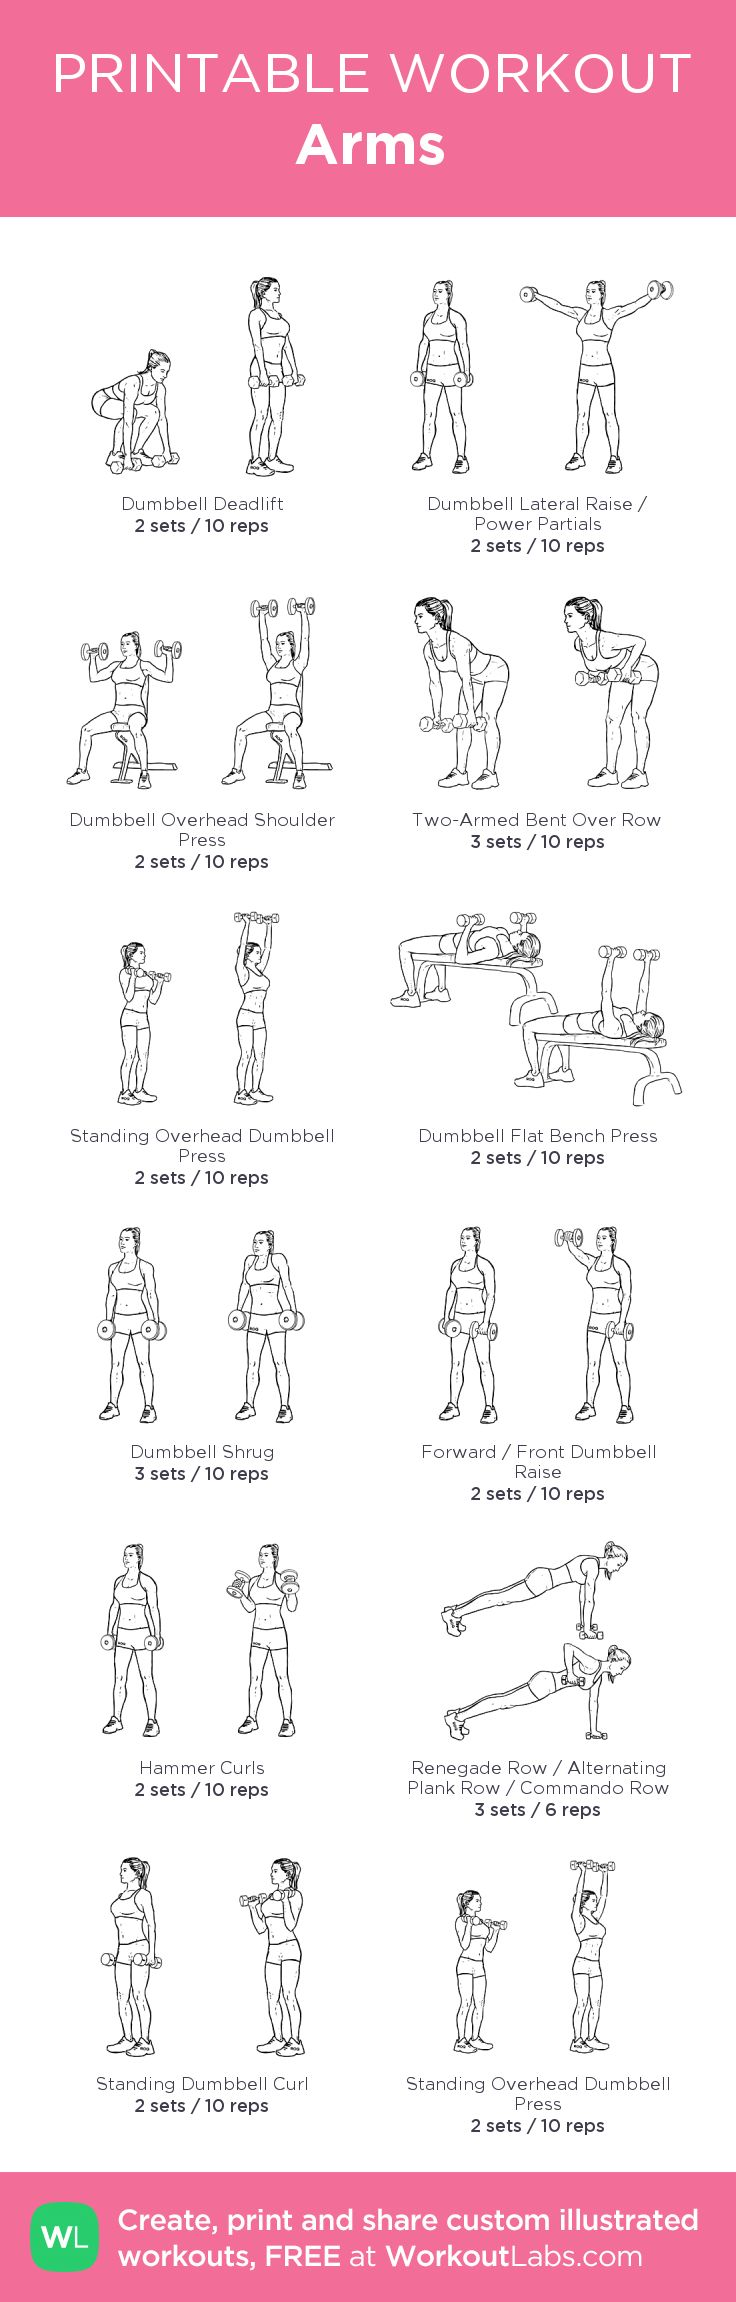 Arms:my visual workout created at WorkoutLabs.com • Click through to customize and download as a FREE PDF! #customworkout